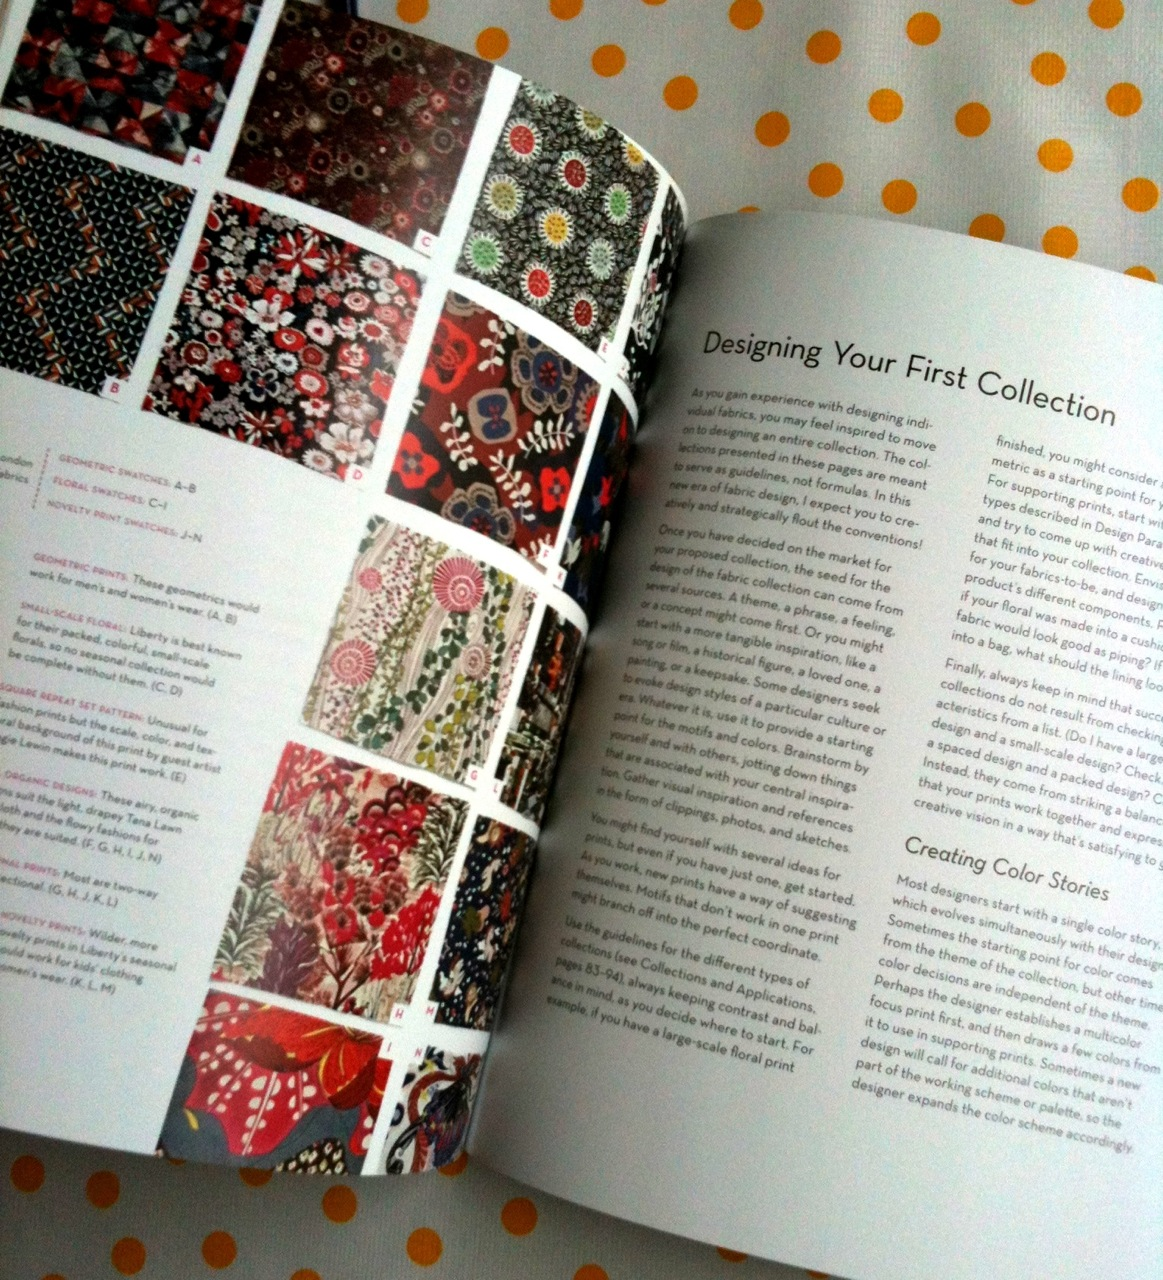 A Few Scraps: A Field Guide to Fabric Design: review! giveaway!